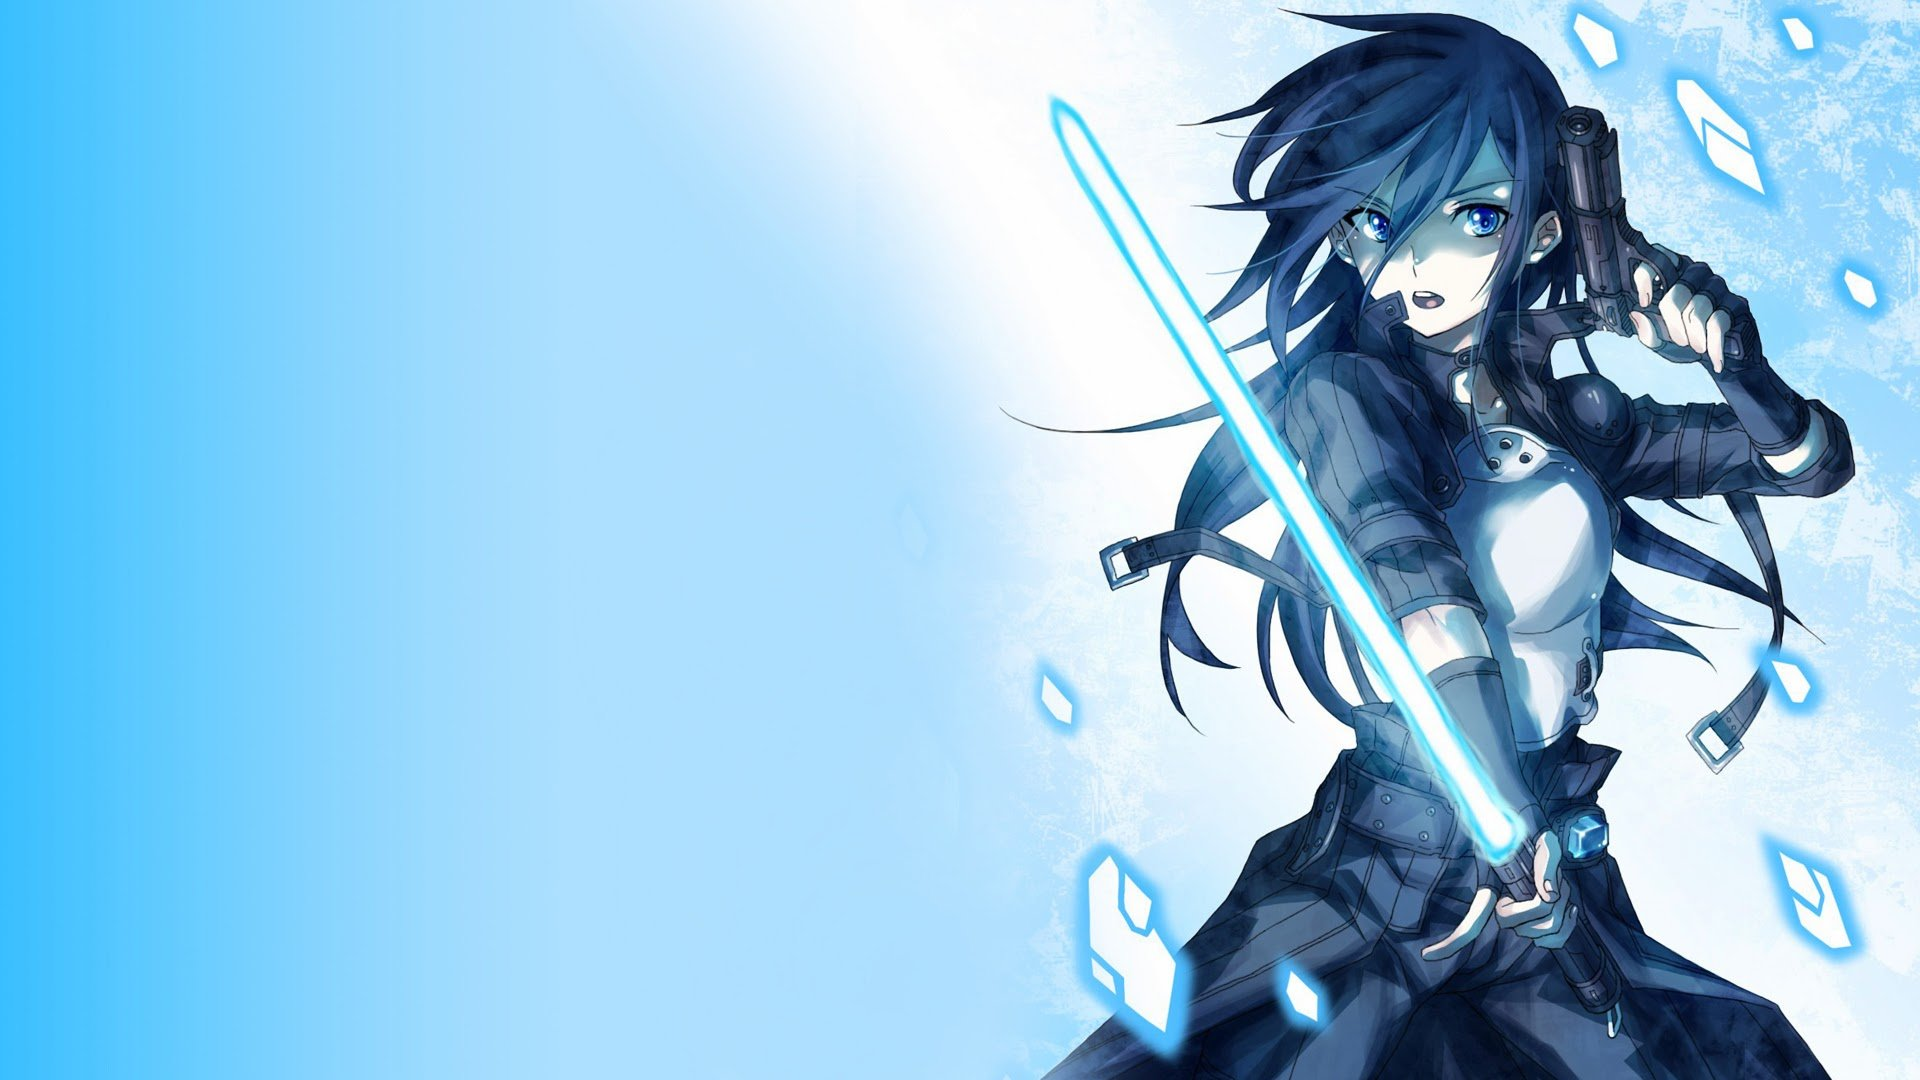 ... sword art online 2 gun gale online anime 2014 hd wallpaper 1920x1080